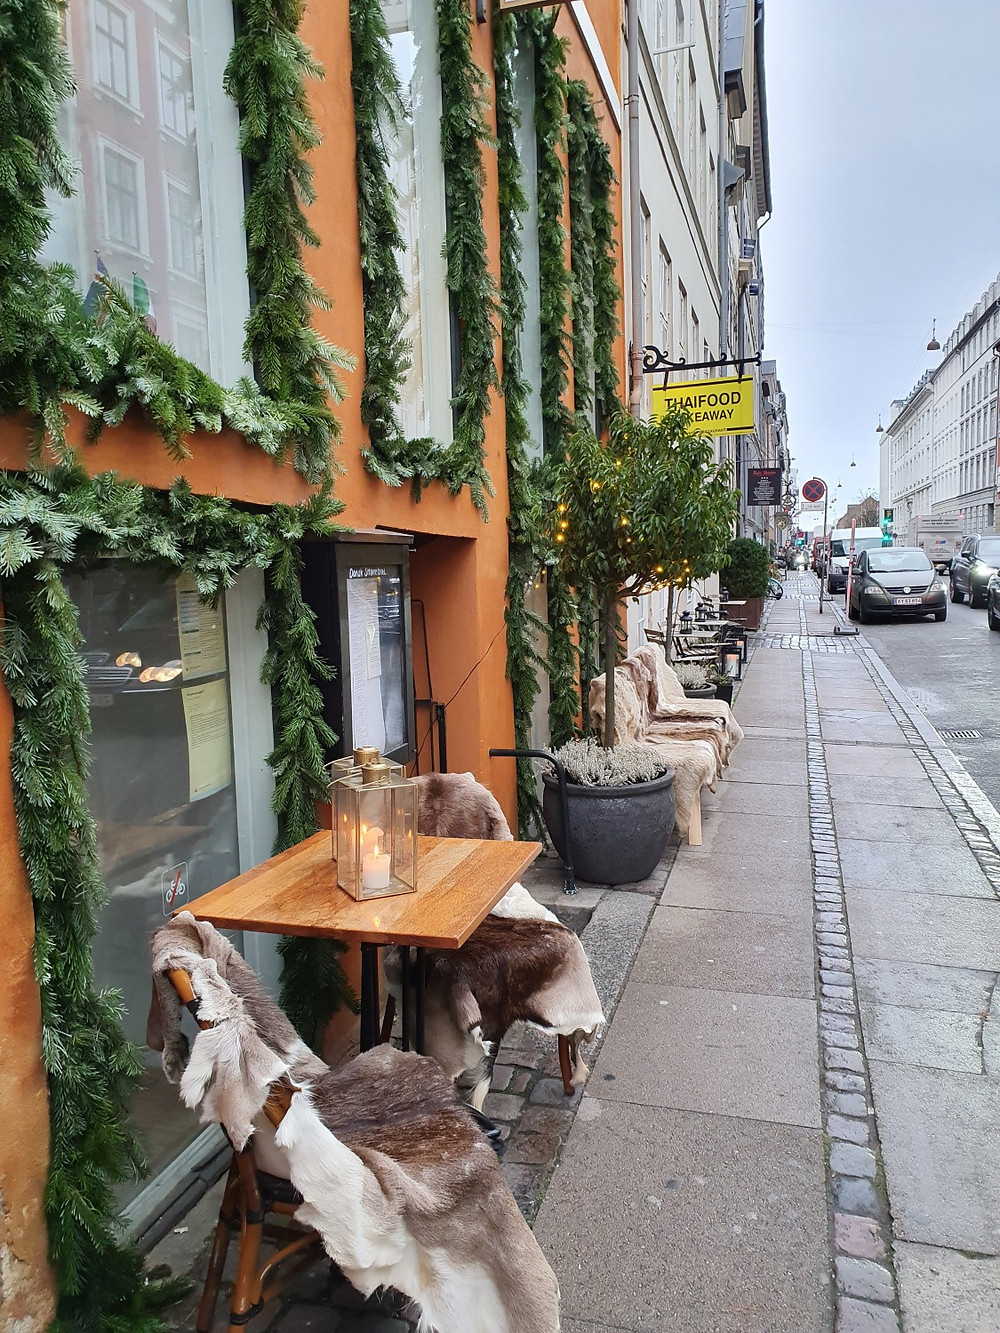 A street in Copenhagen with cafe tables and candels as a proof of the Danish hygge